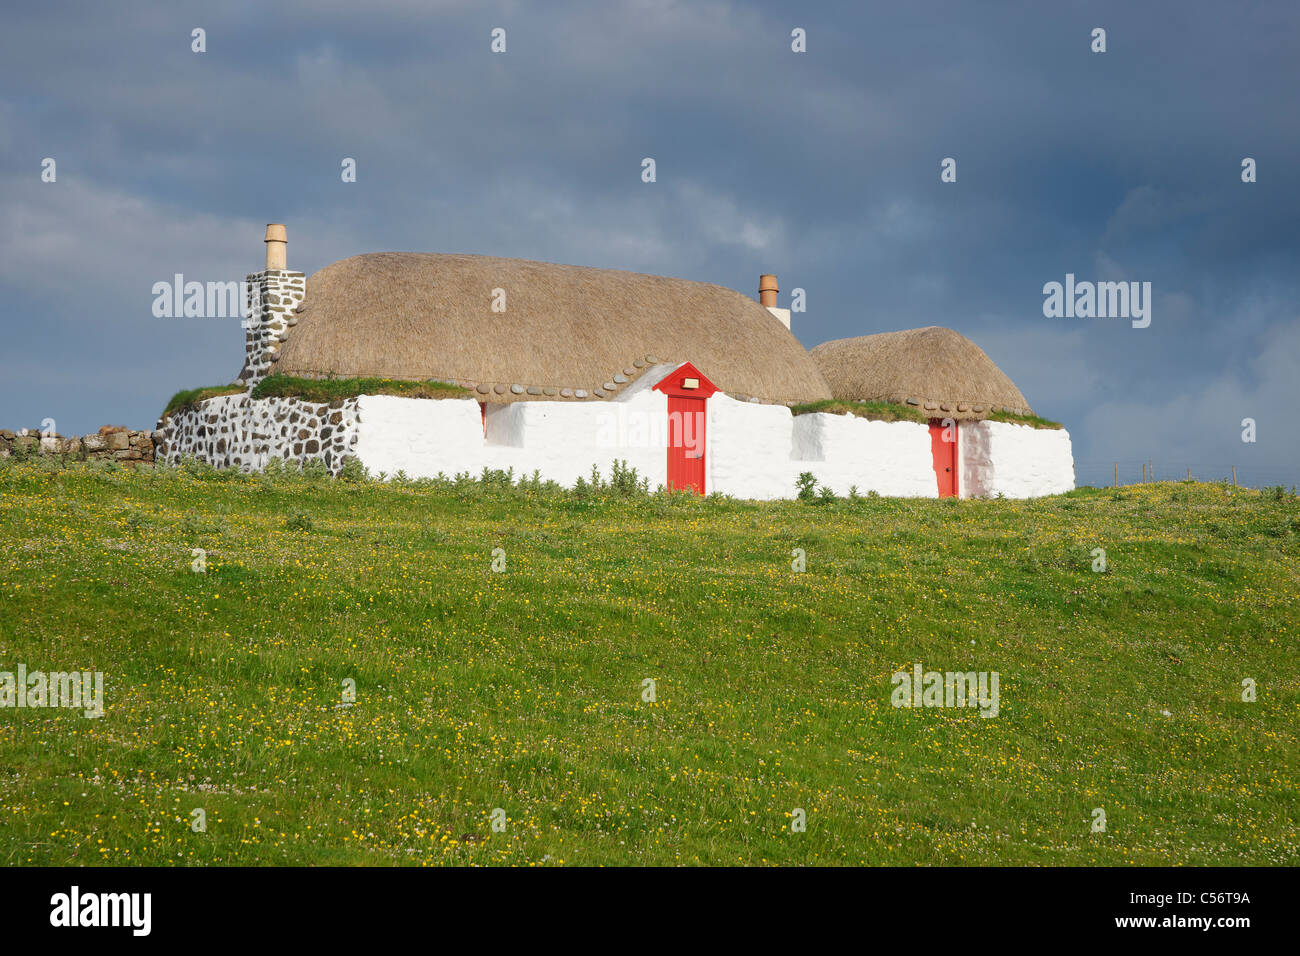 A white, thatched cottage with red door at Sraid Ruad, Tiree, Argyll, Scotland, UK. - Stock Image